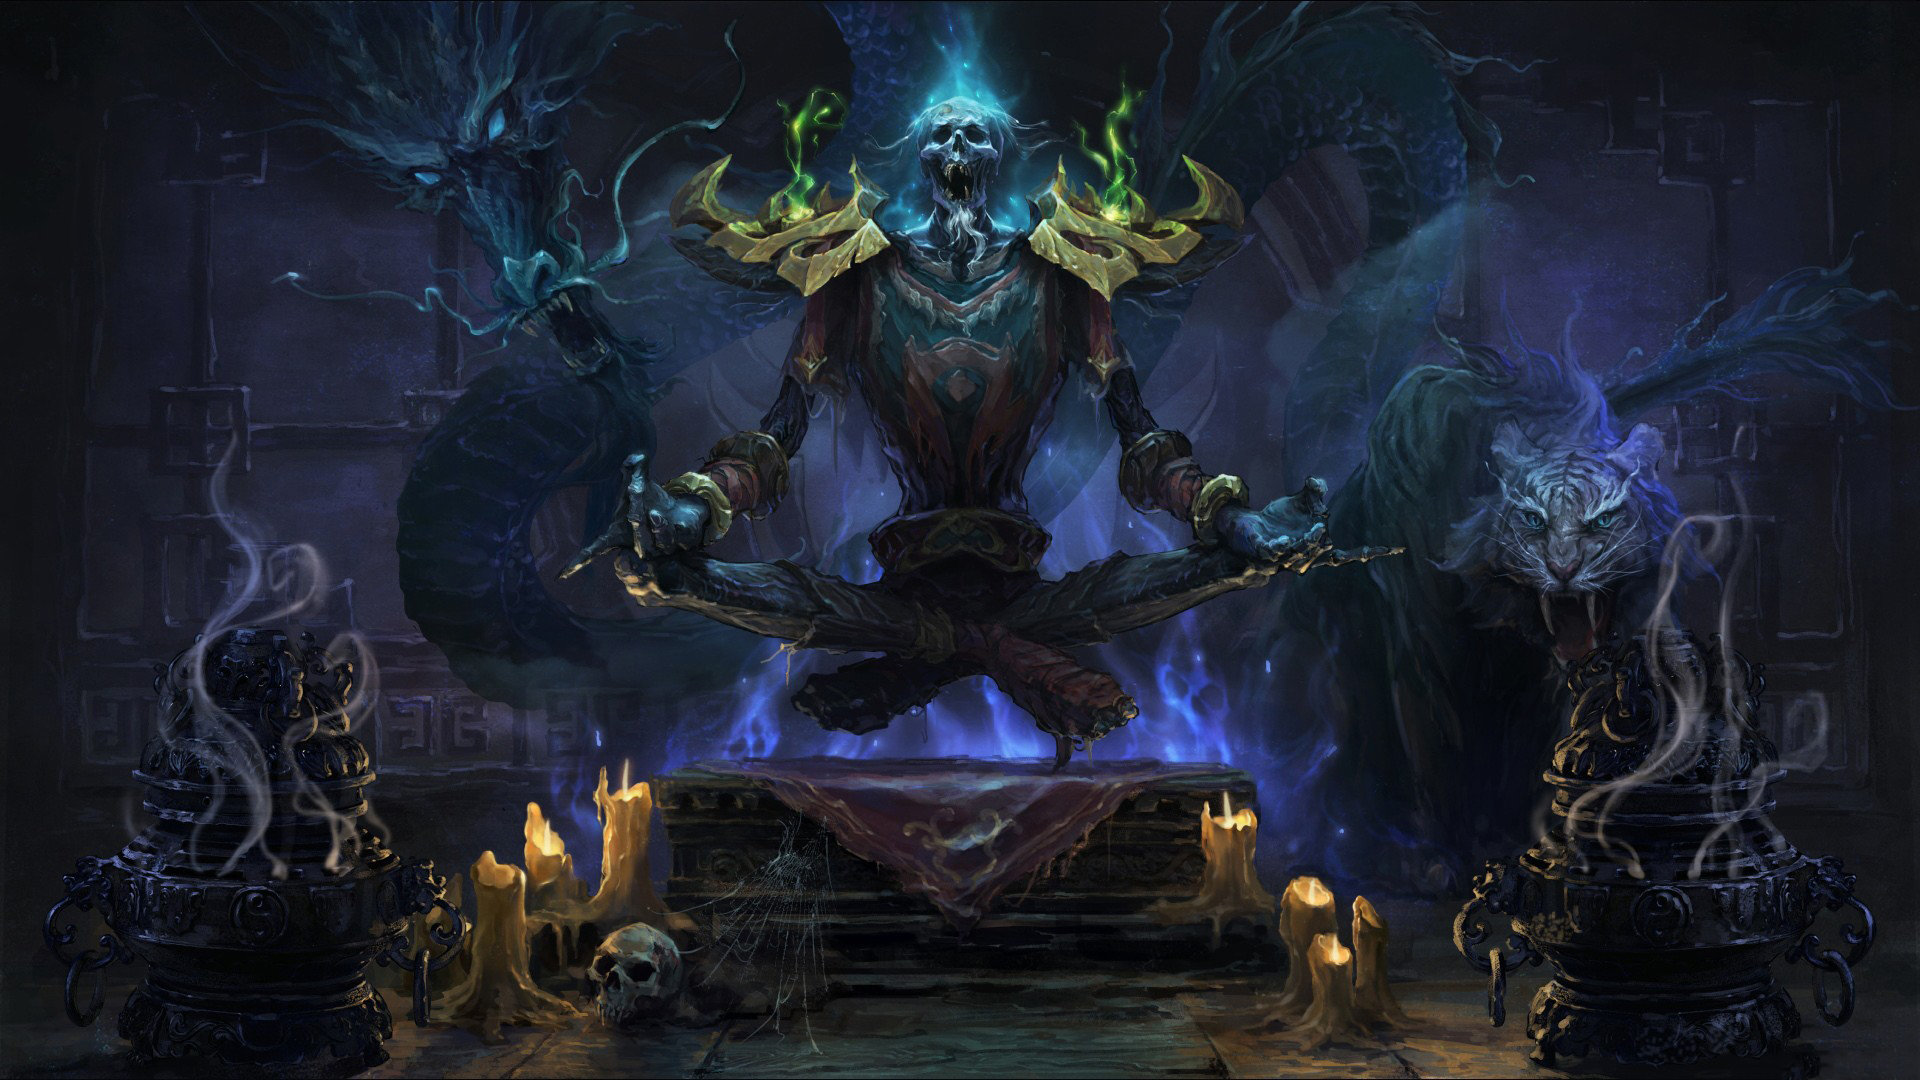 Best World Of Warcraft Wow Wallpaper Id 245005 For High Resolution 1080p Computer